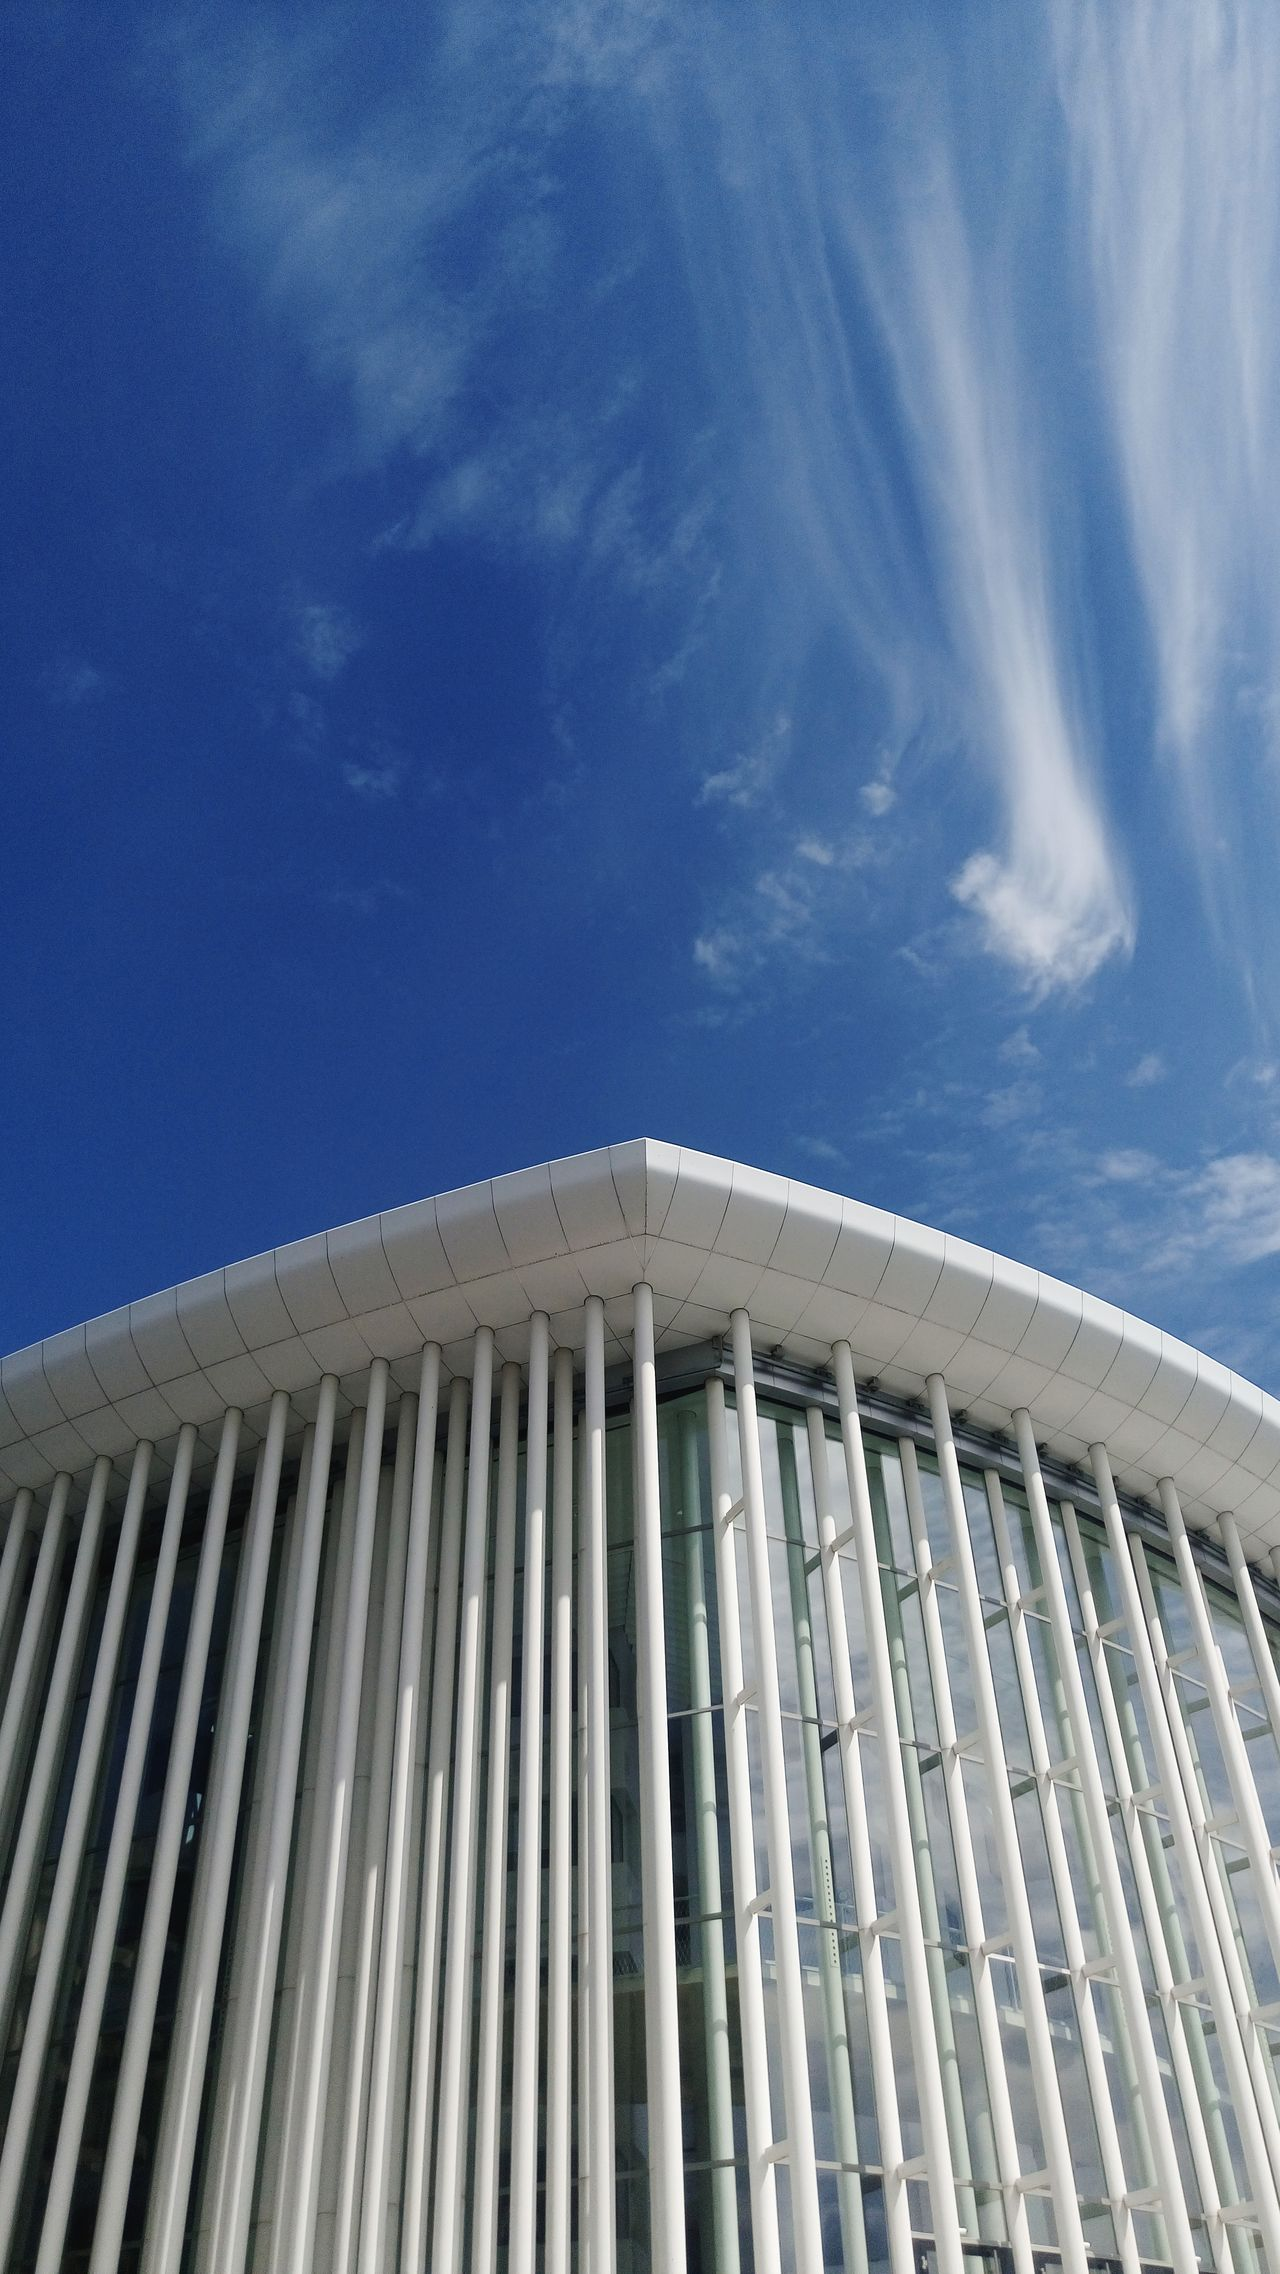 Sky Blue No People Low Angle View Cloud - Sky Day Architecture Outdoors Close-up Detail Design Luxembourg Harmony White White Building City Architecture Art City Street Photography EyeEmNewHere Luxembourg Streetphotography Luxembourg Philharmonic Philharmonie Nature Beach